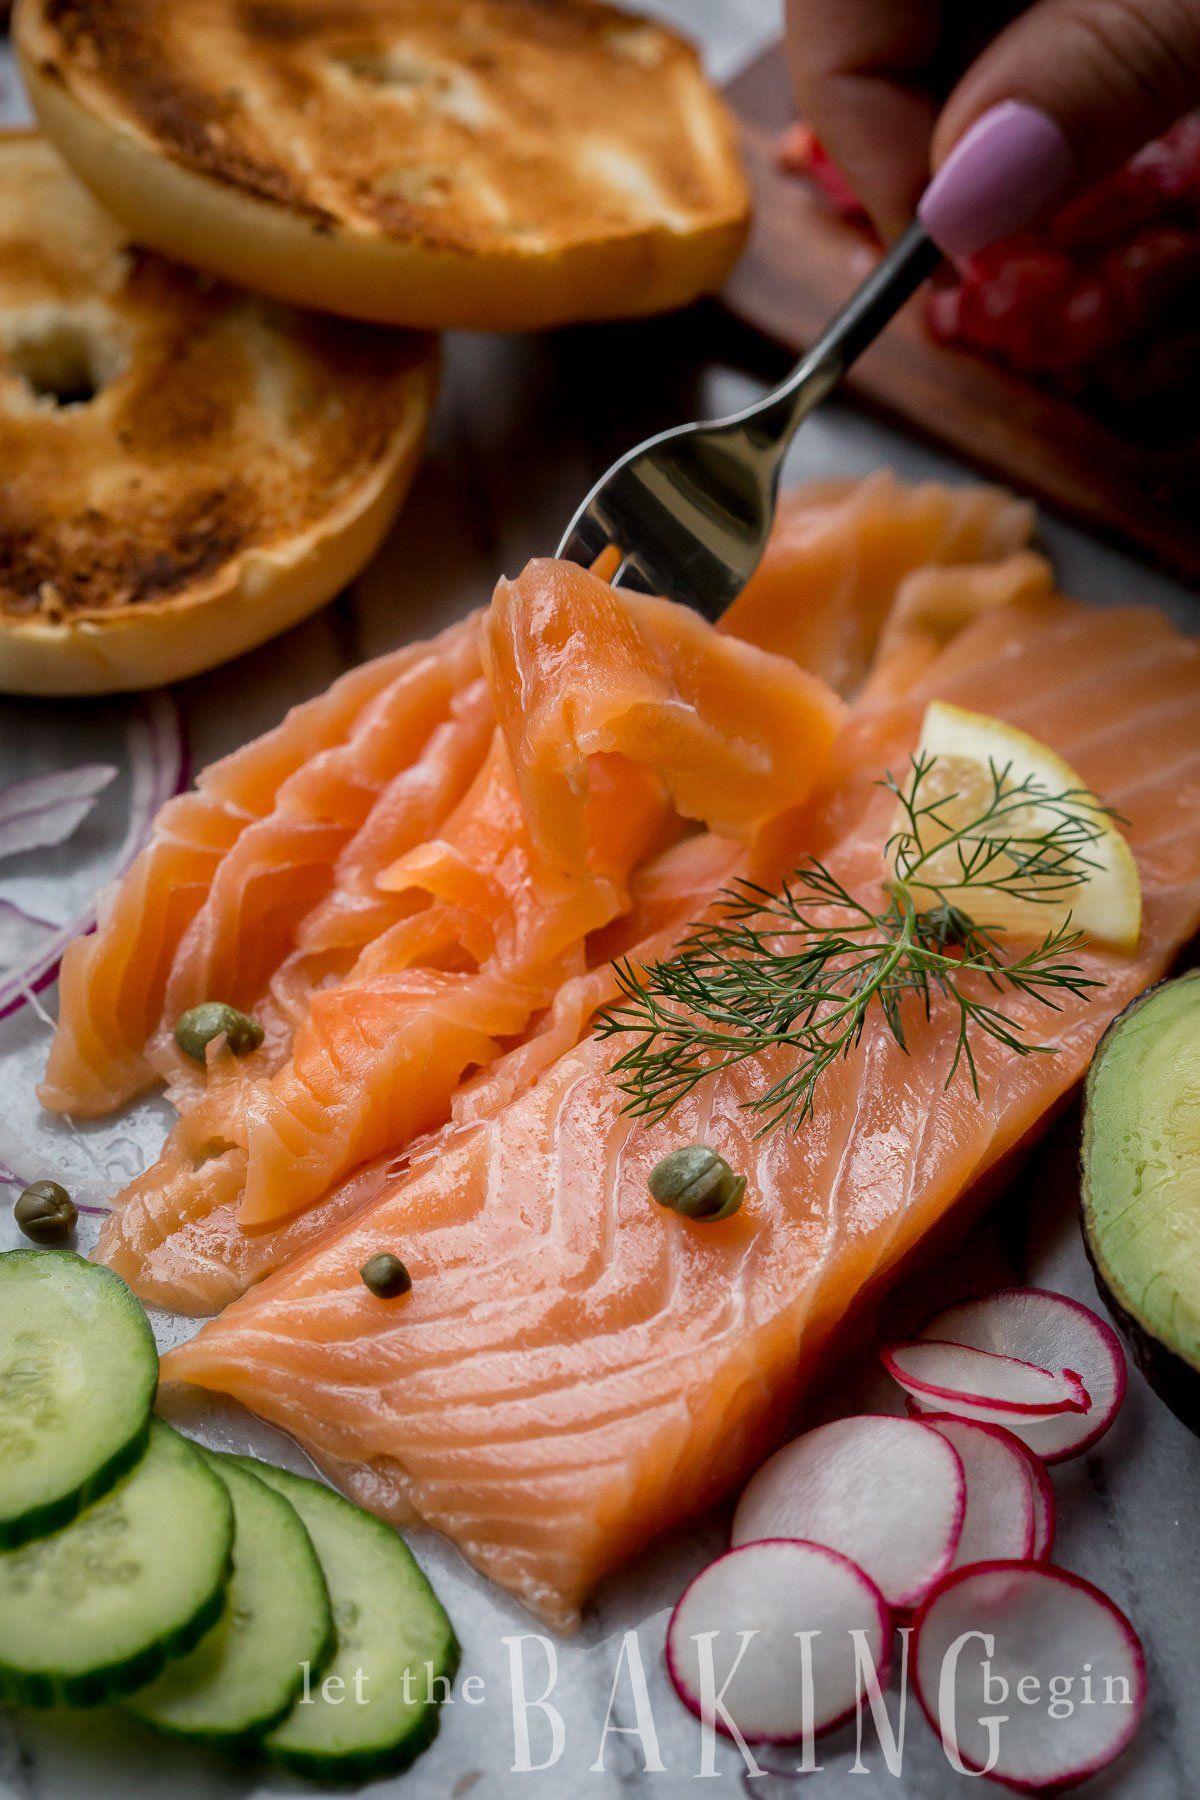 Cold Smoked salmon with capers and fresh dill picked up with a fork.